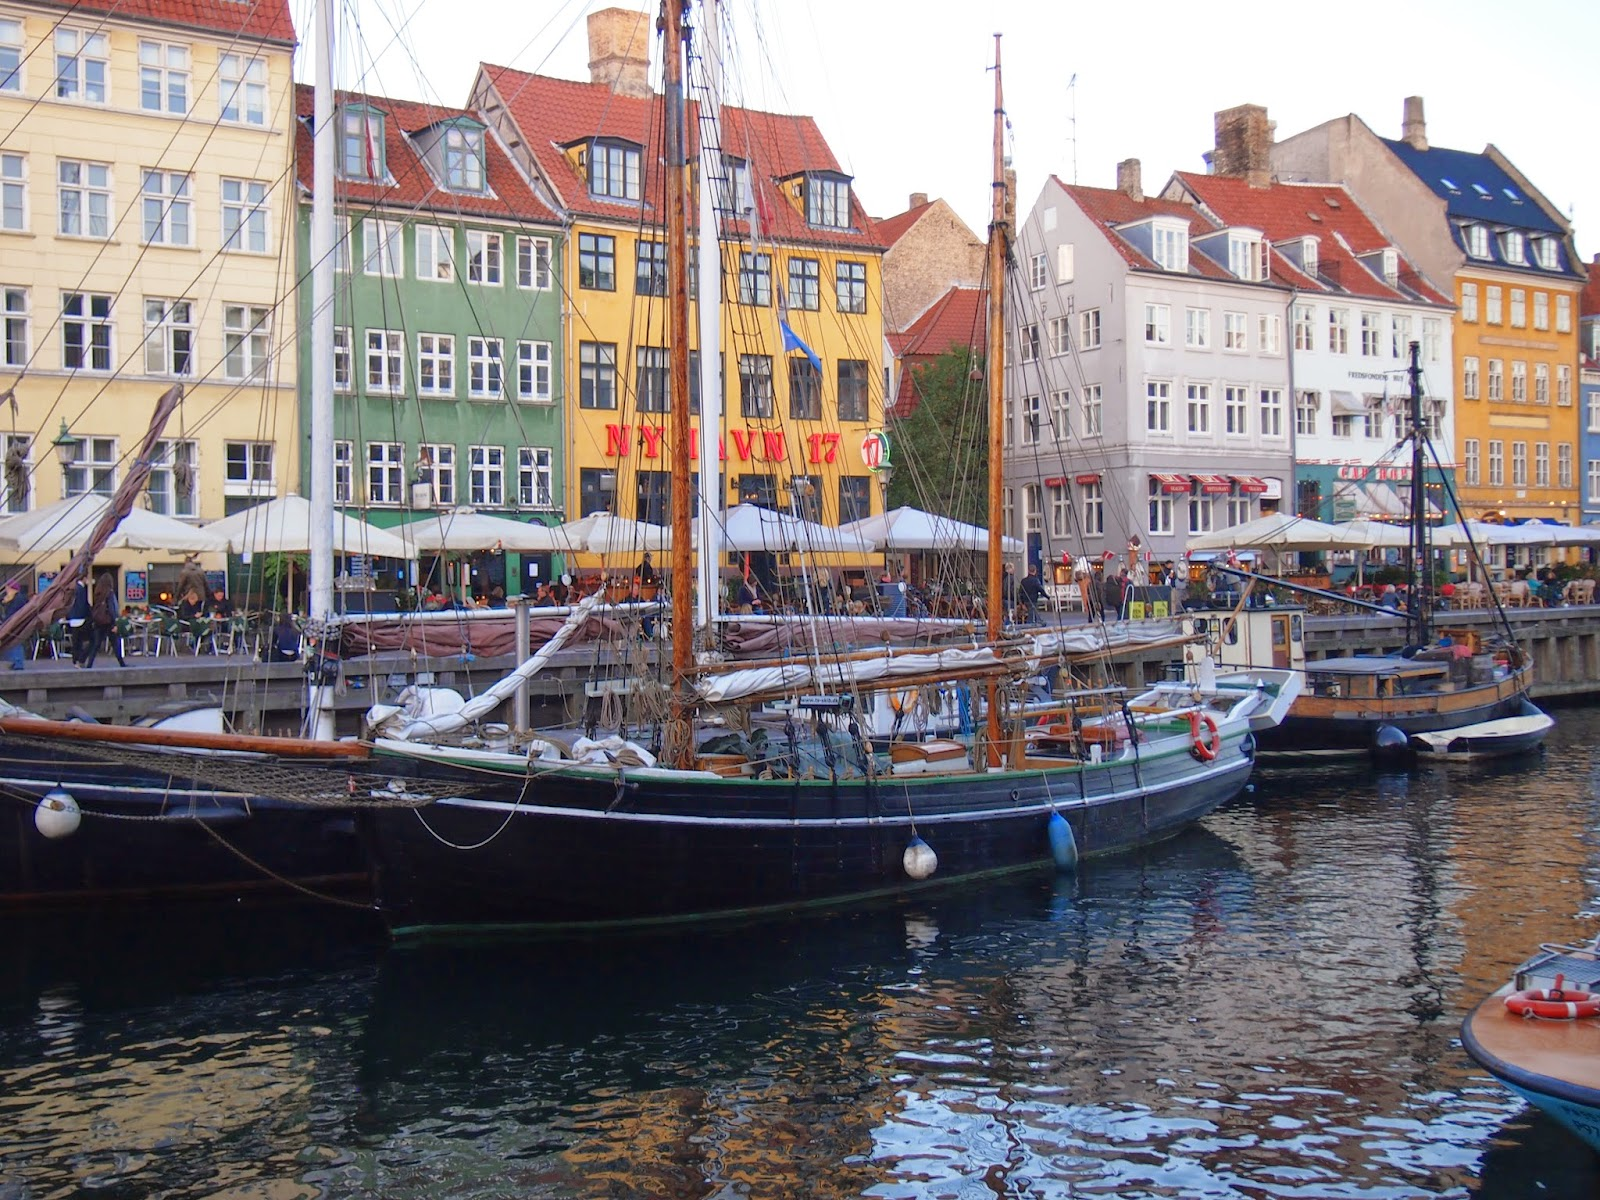 Boats at Nyhavn